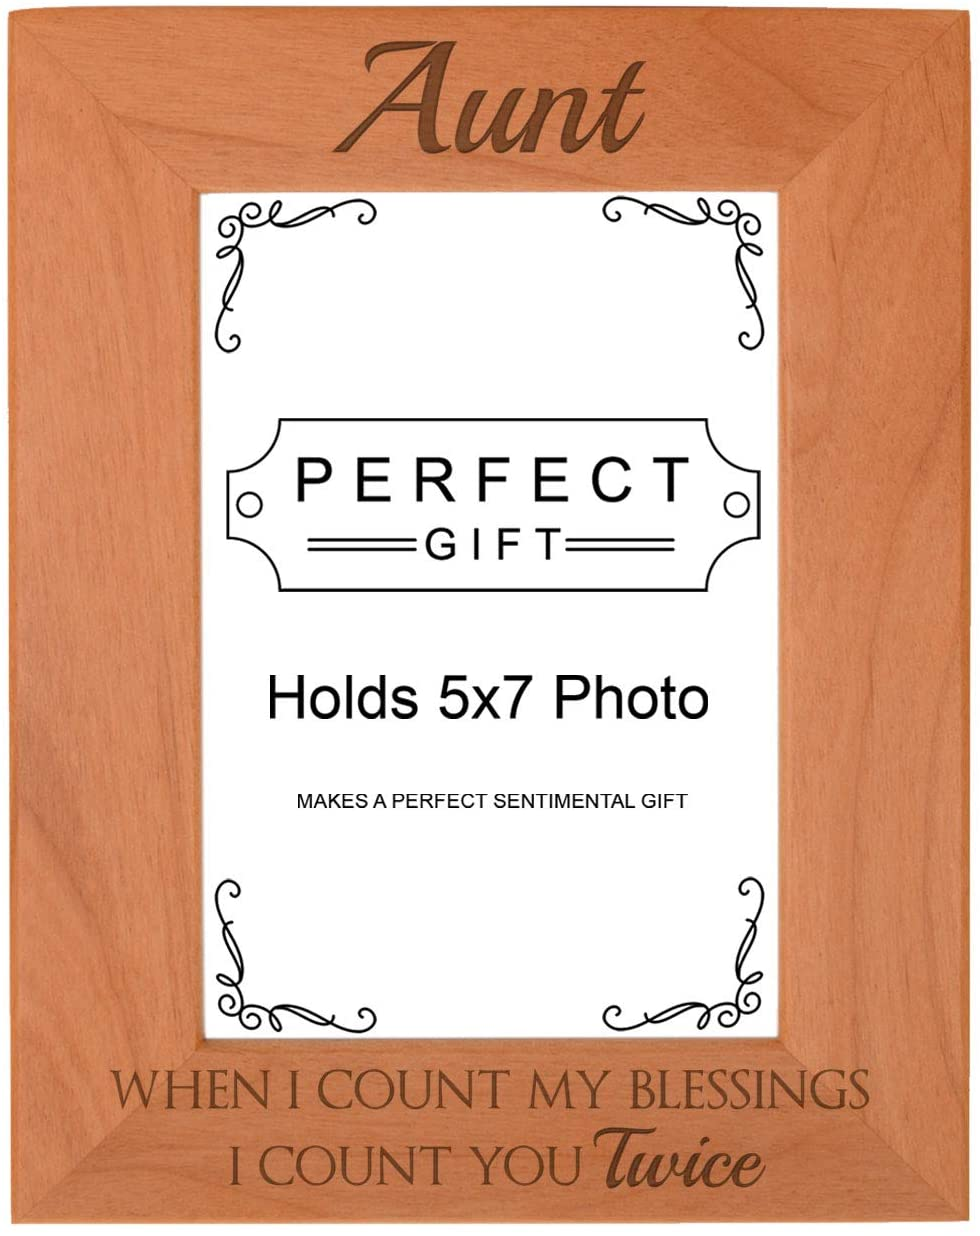 Aunt Birthday Gifts When I Count Blessings I Count You Twice Aunt Gift Engraved 5x7 Portrait Frame